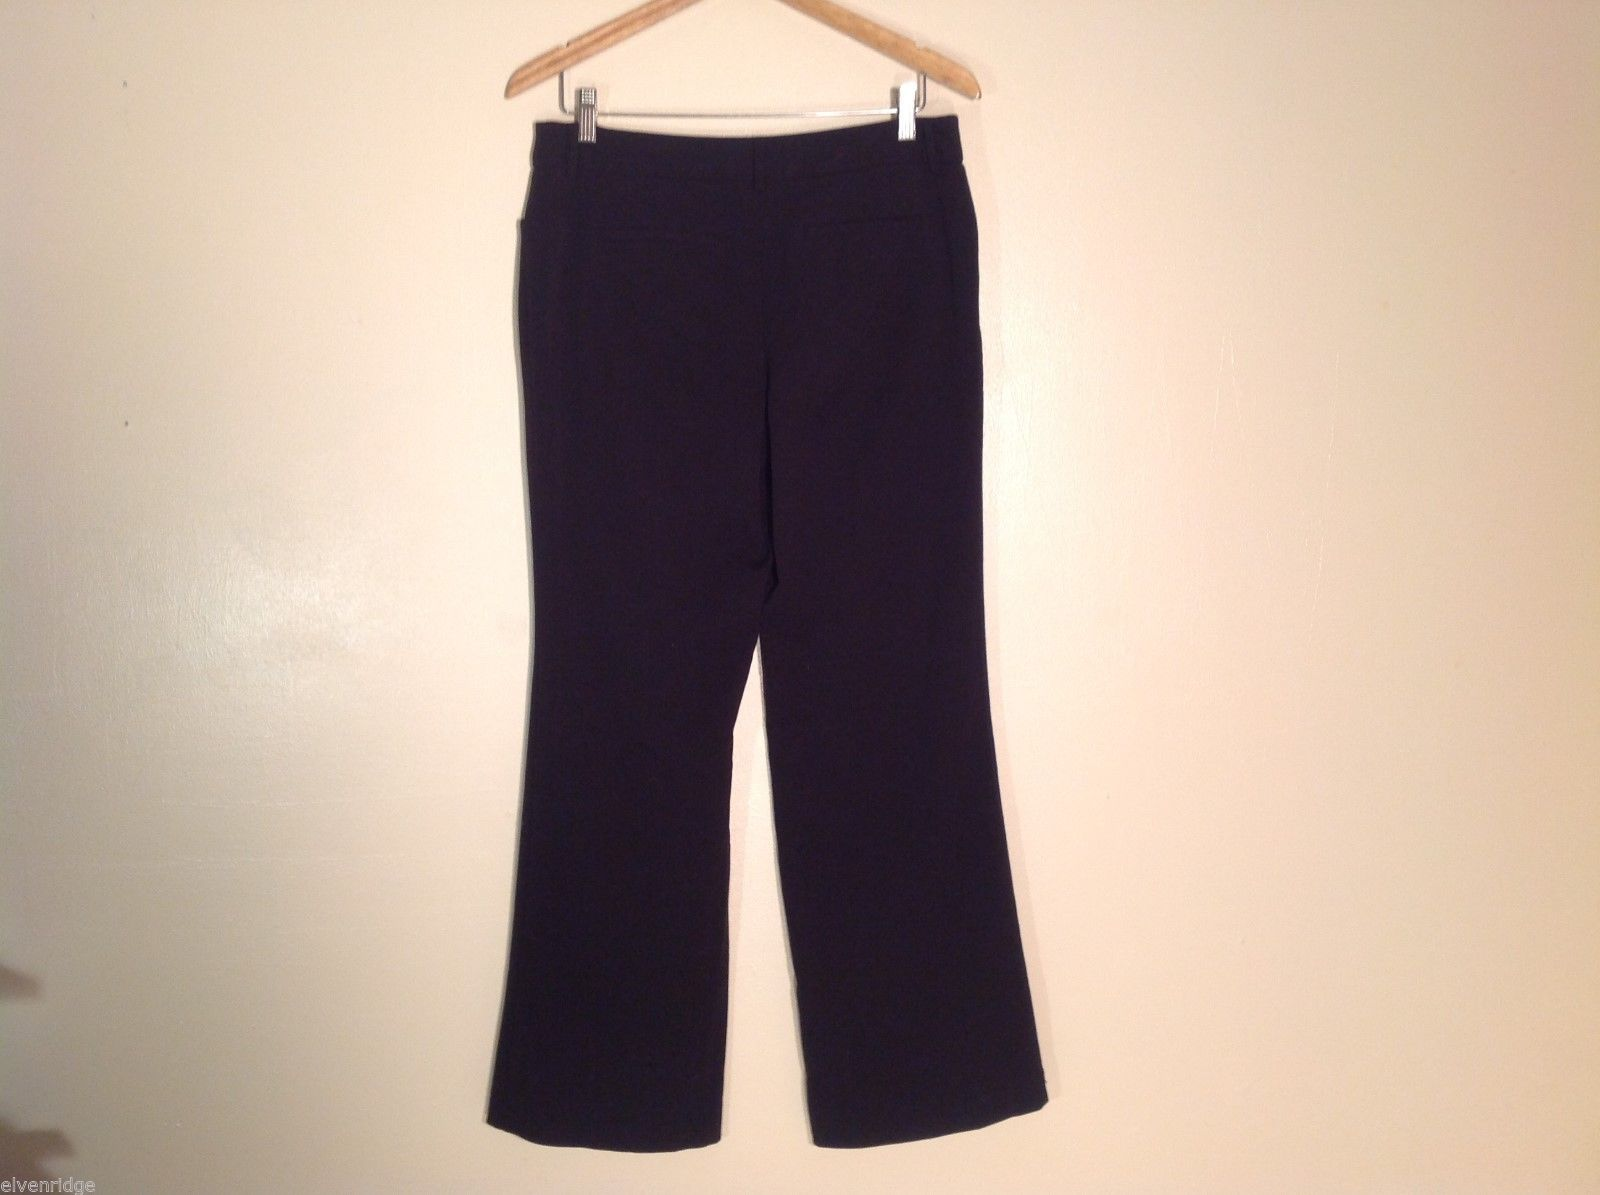 Womens APT. 9 Modern Fit Black Dress Pants, Size 10